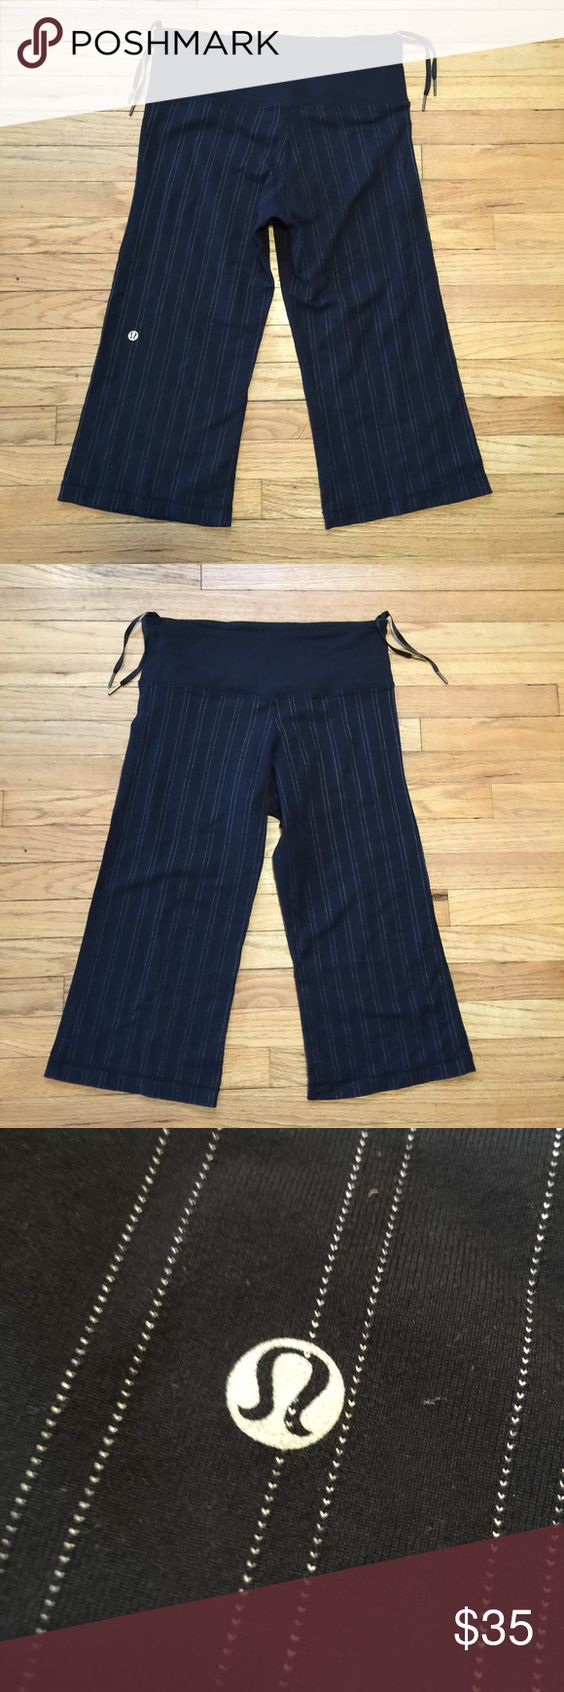 Lululemon black striped workout capris - size 6. Lululemon black striped workout capris - size 6. Waist - 14 inches. Rise - 11 inches. Inseam - 18.5 inches. Excellent condition lululemon athletica Pants Ankle & Cropped